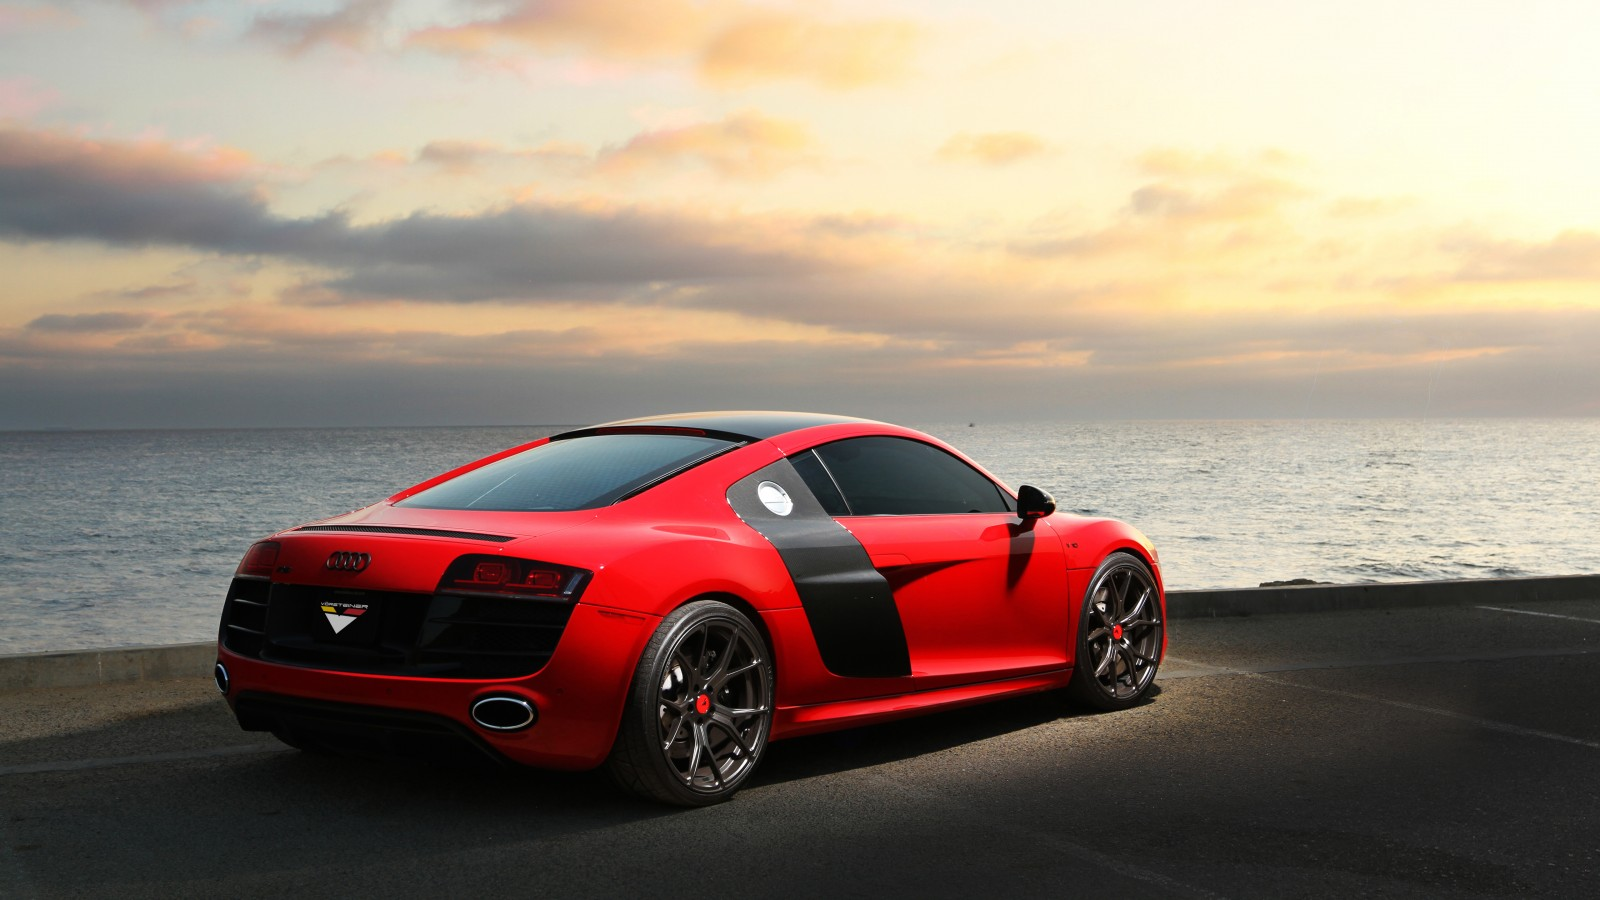 Cars Wallpapers: Vorsteiner Audi R8 Carbon Graphite 5K 2 Wallpaper